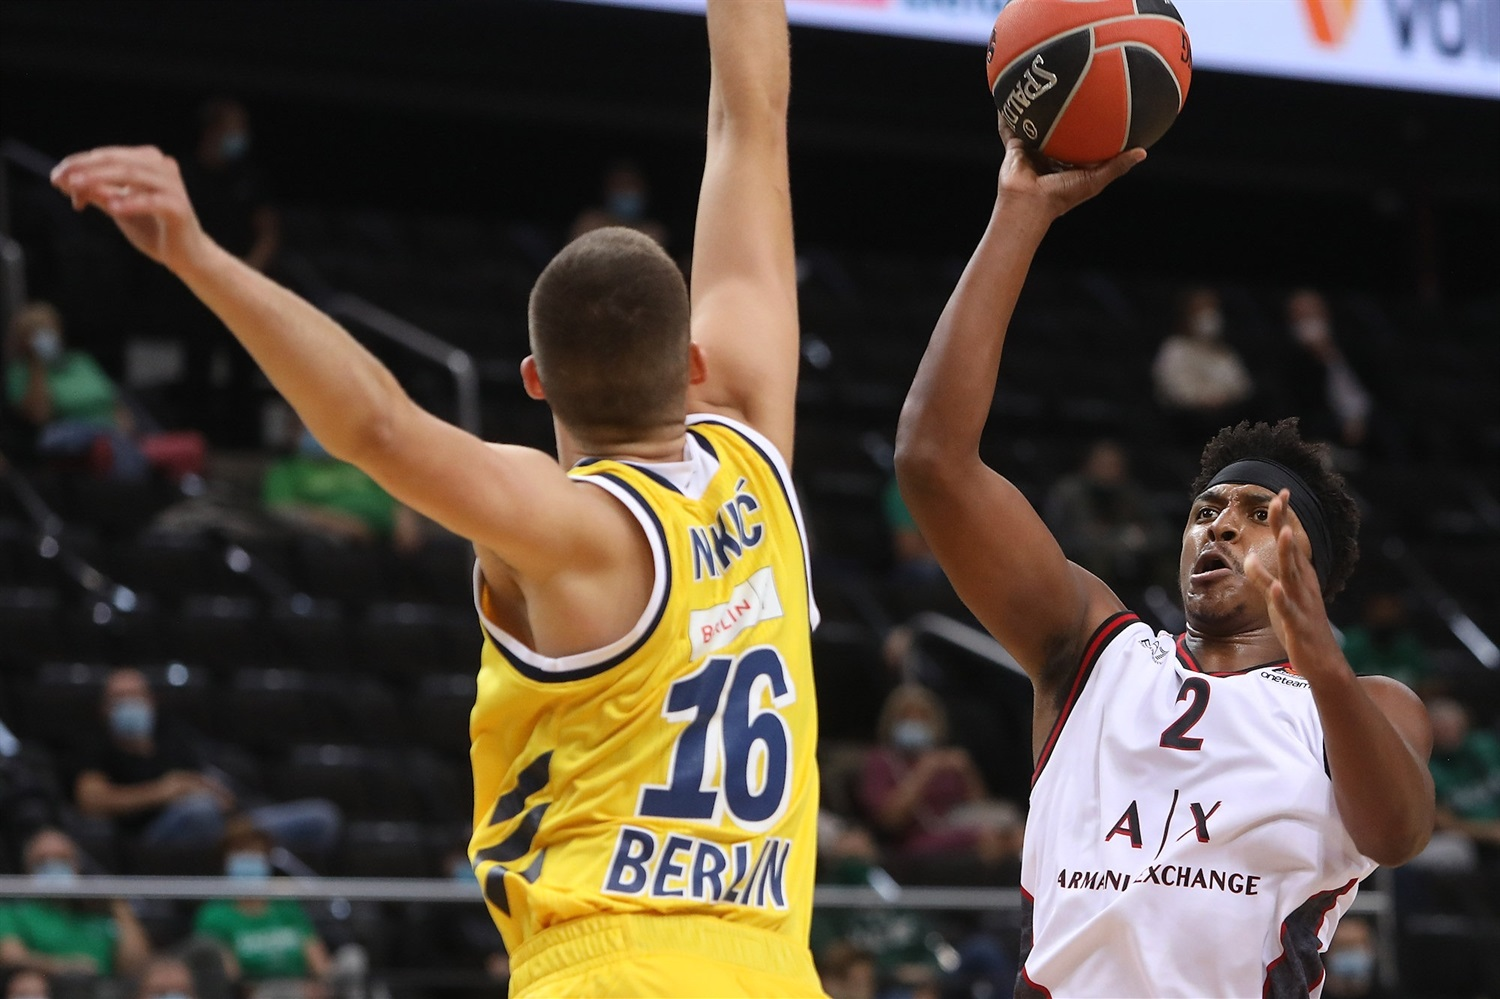 Zach Leday - AX Armani Exchange Milan - Preseason Tour Kaunas 2020 - EB20